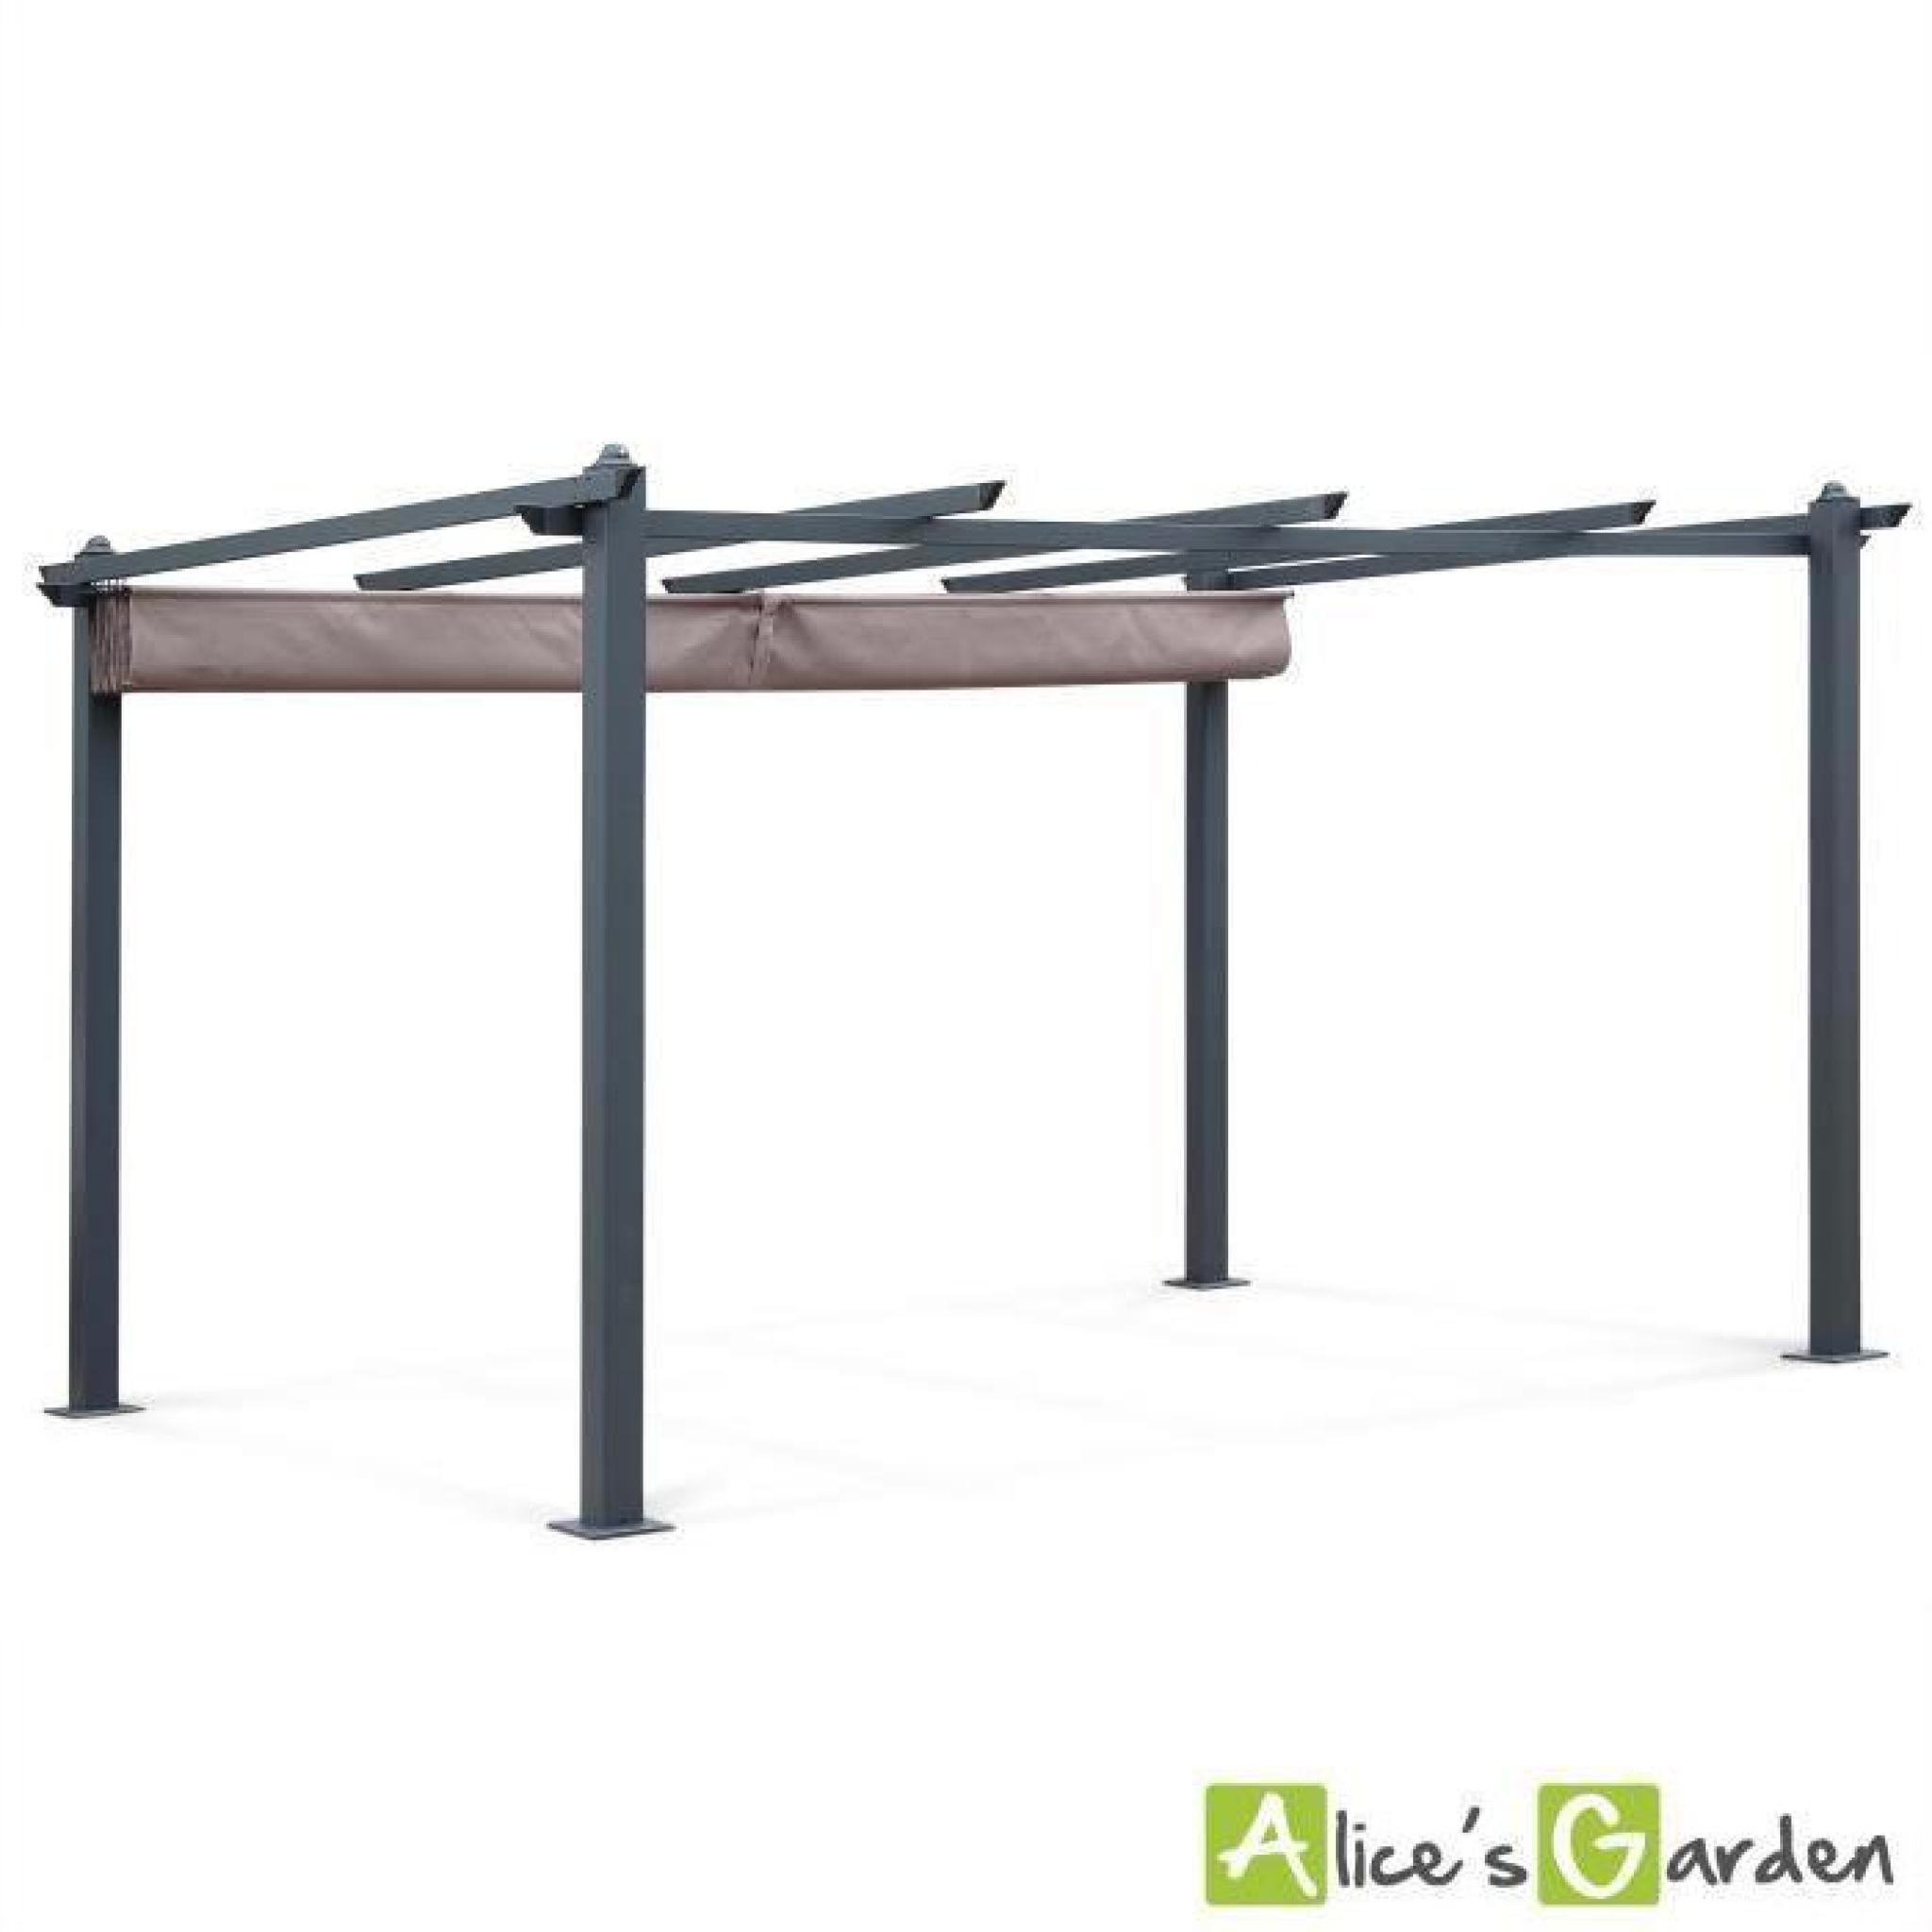 Emejing tonnelle de jardin retractable gallery awesome for Pergolas para jardin